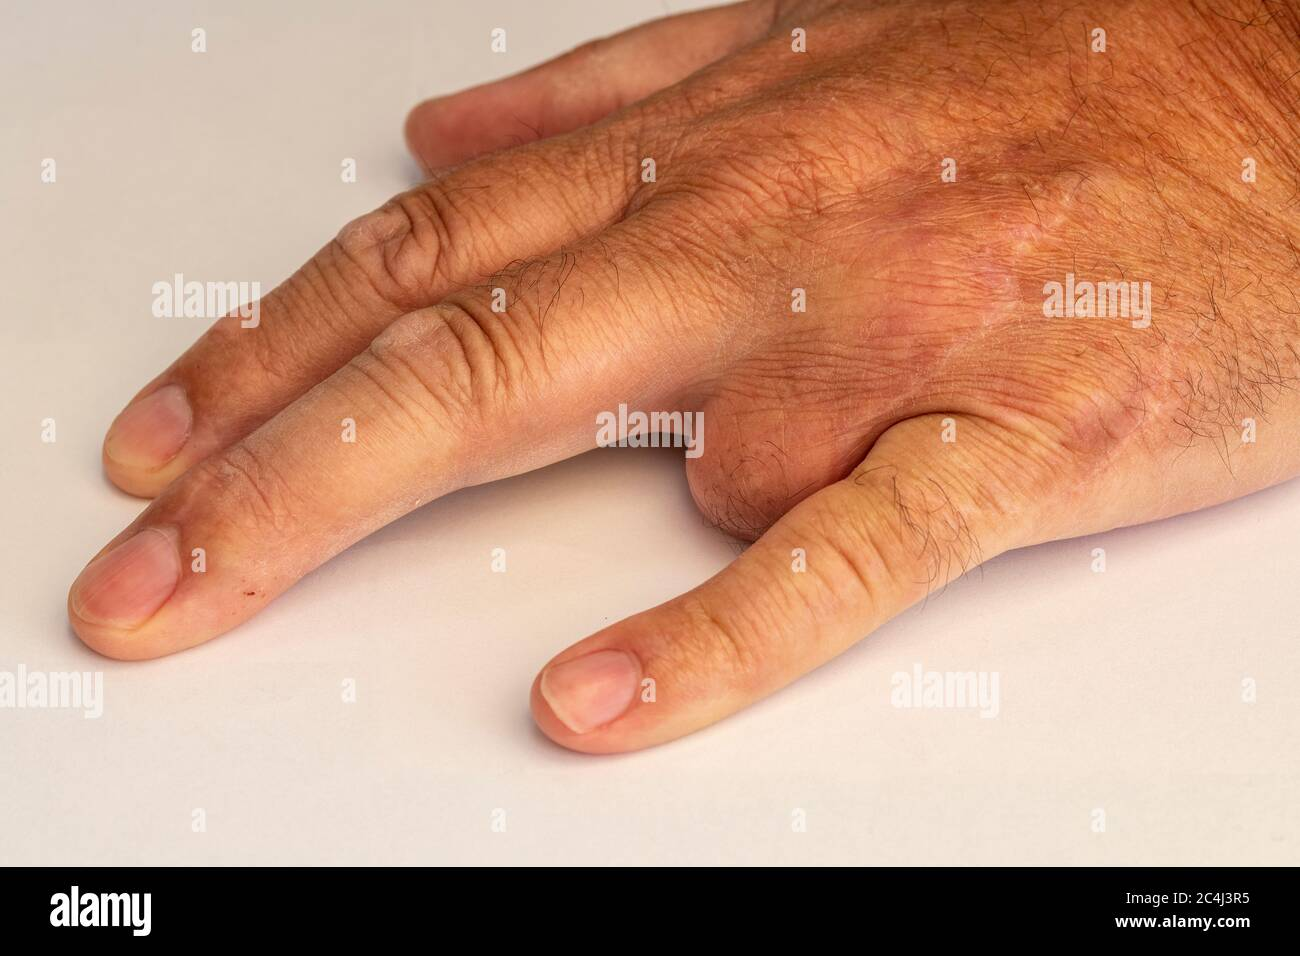 Left Hand With Third Finger Removed Stock Photo Alamy